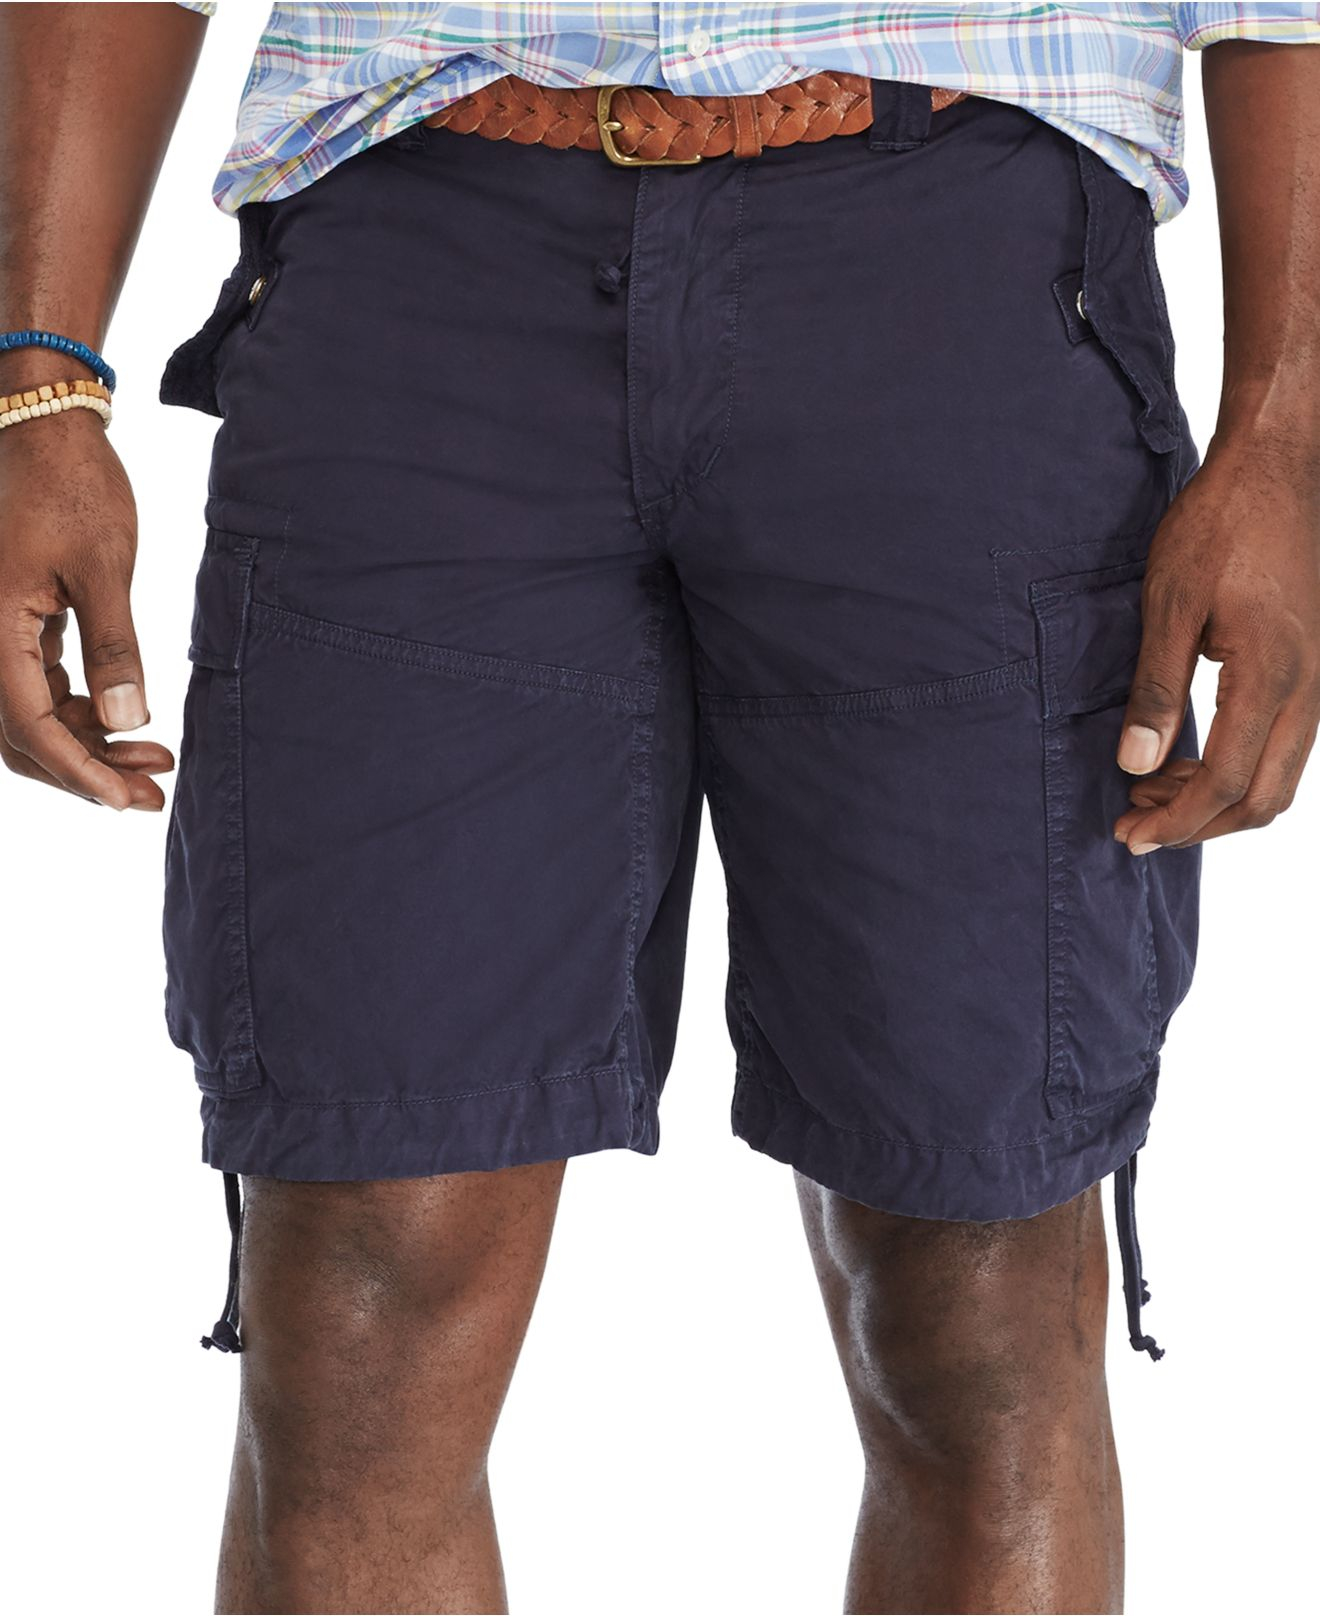 polo ralph lauren cargo shorts big and tall dr e horn. Black Bedroom Furniture Sets. Home Design Ideas